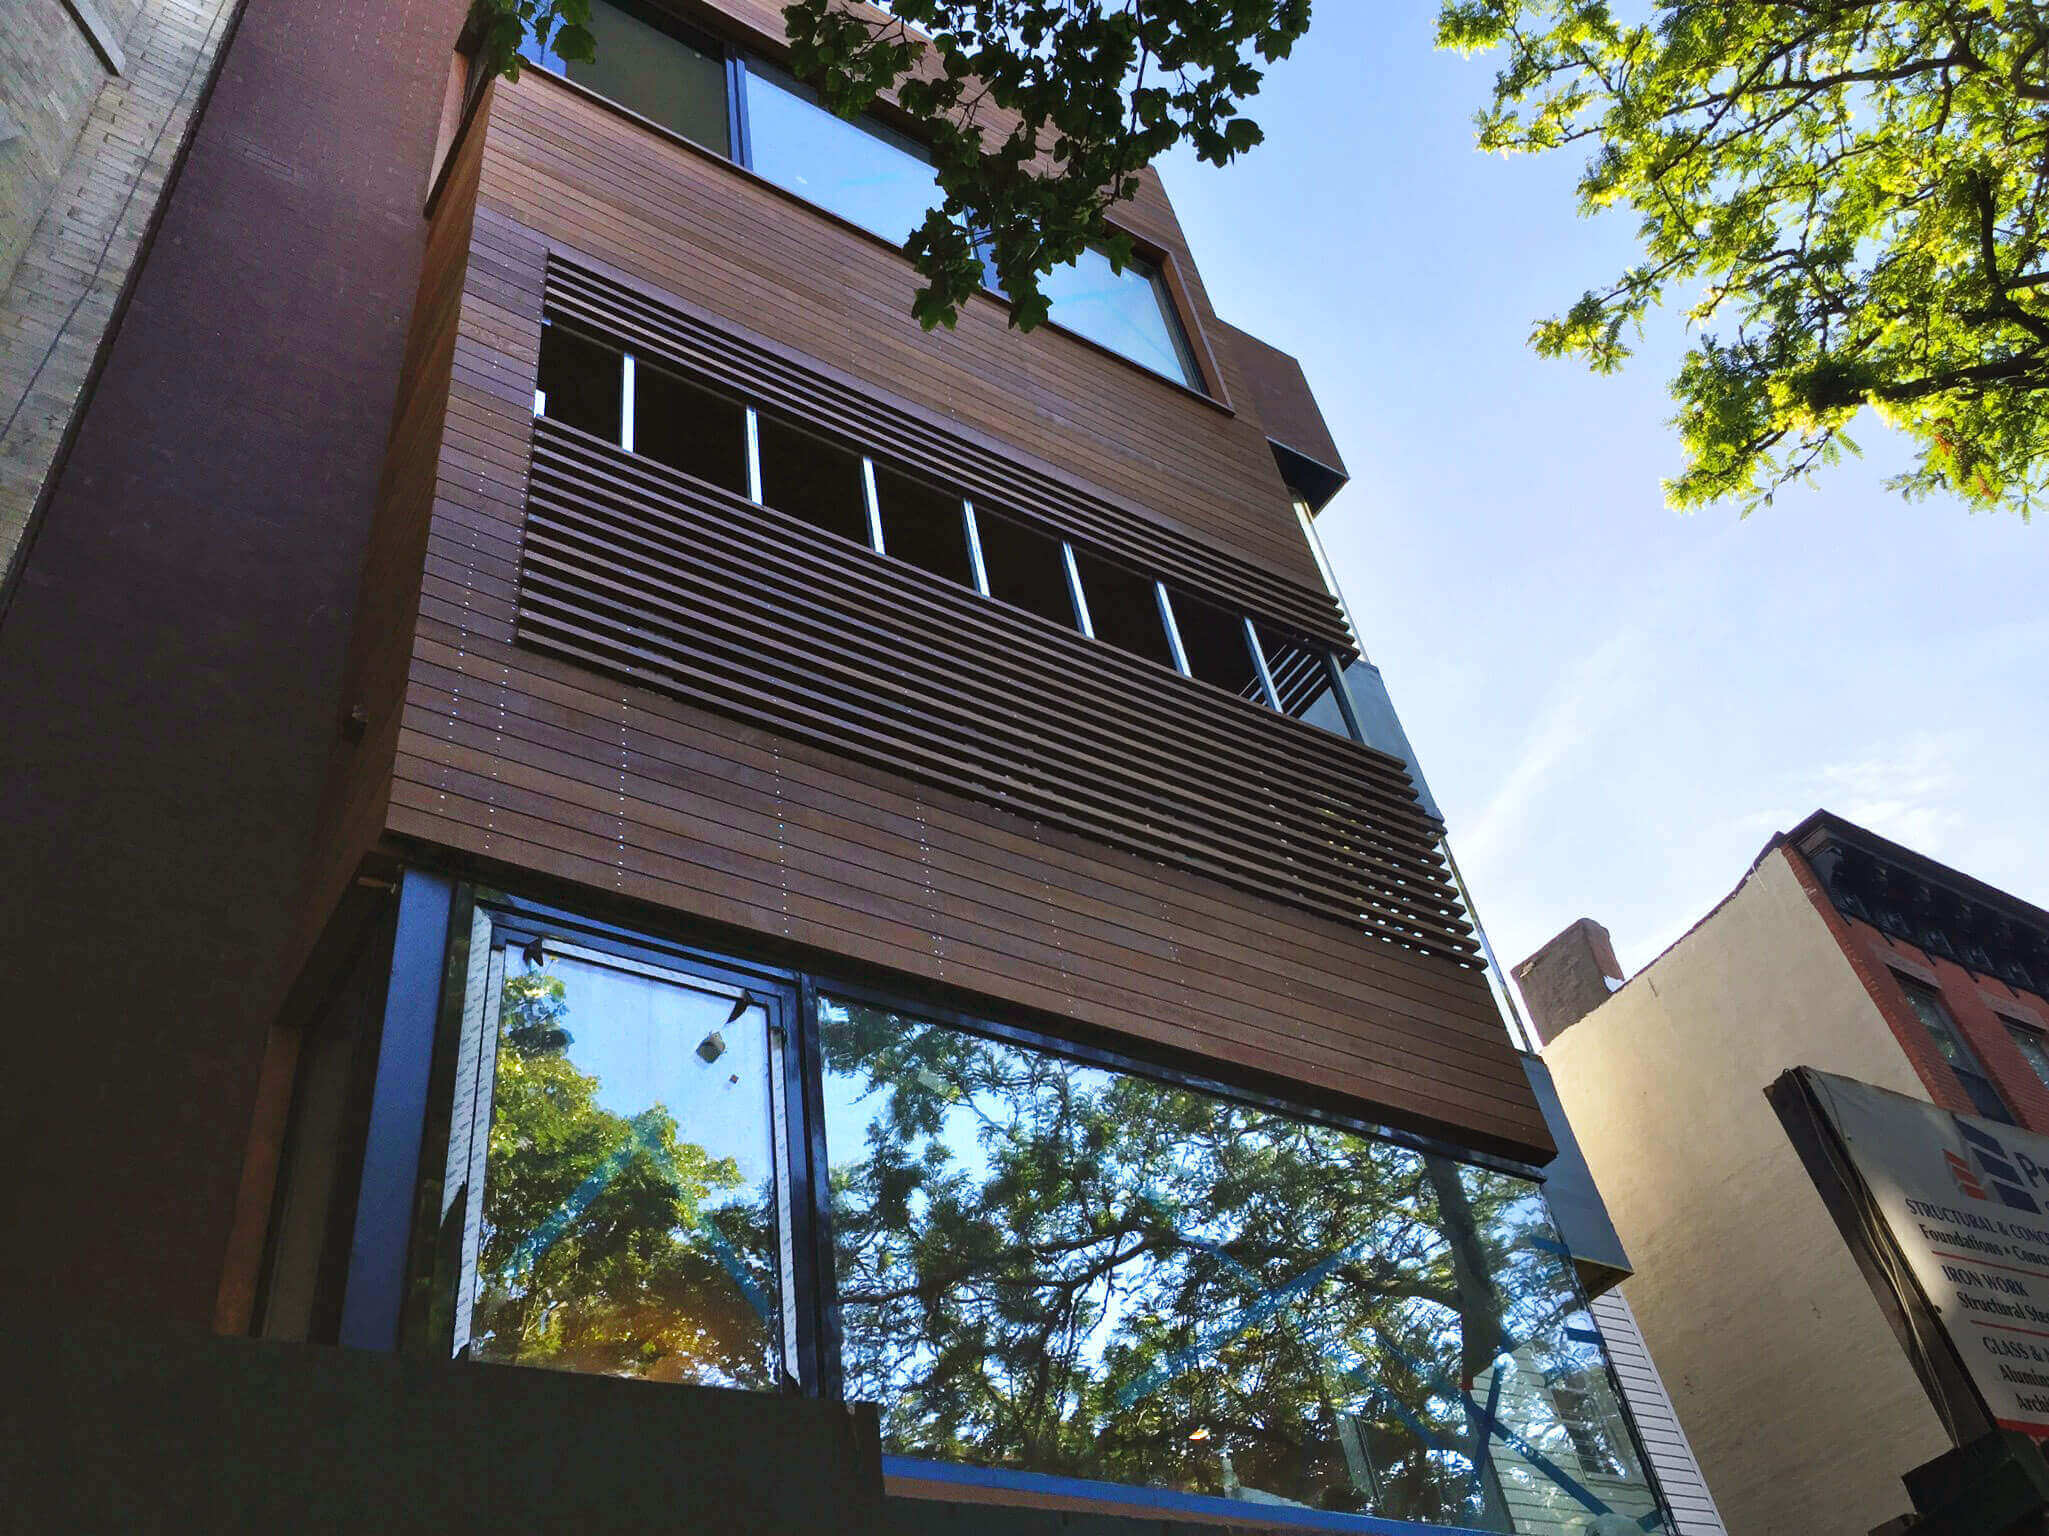 res4-resolution-4-architecture-modern-home-residential-park-slope-townhouse-construction-facade.jpg